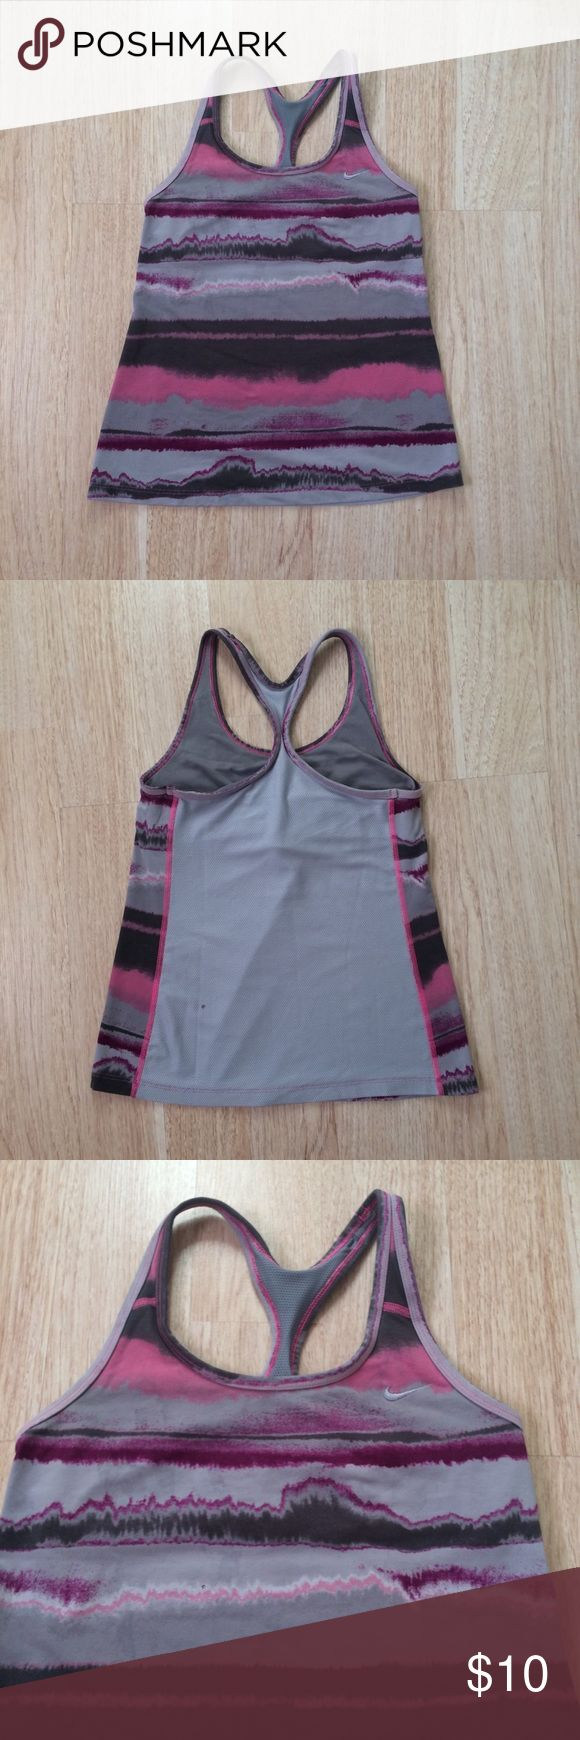 Nike Dri Fit Workout Tank Top From Nike size medium purple and gray Print Workout Sports Tank Top in great condition has bra underneath, Mesh detail in the back very cute bundle if interested   Tags Brandy Melville urban outfitters free people forever 21 H&M Lululemon pink Victoria's Secret Nike Tops Tank Tops